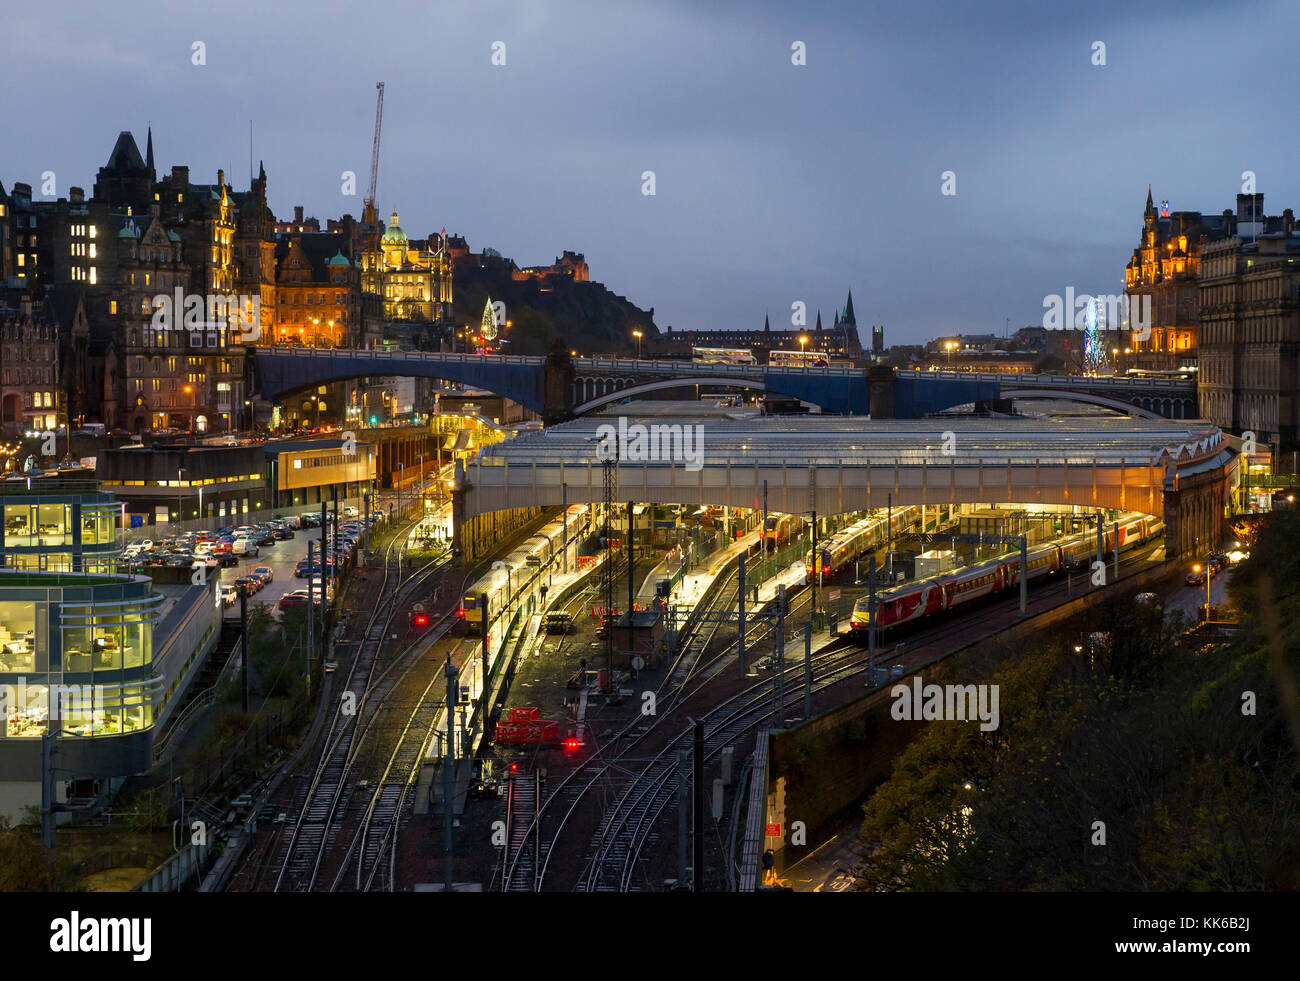 A view of Waverley Station in  Edinburgh city centre. - Stock Image